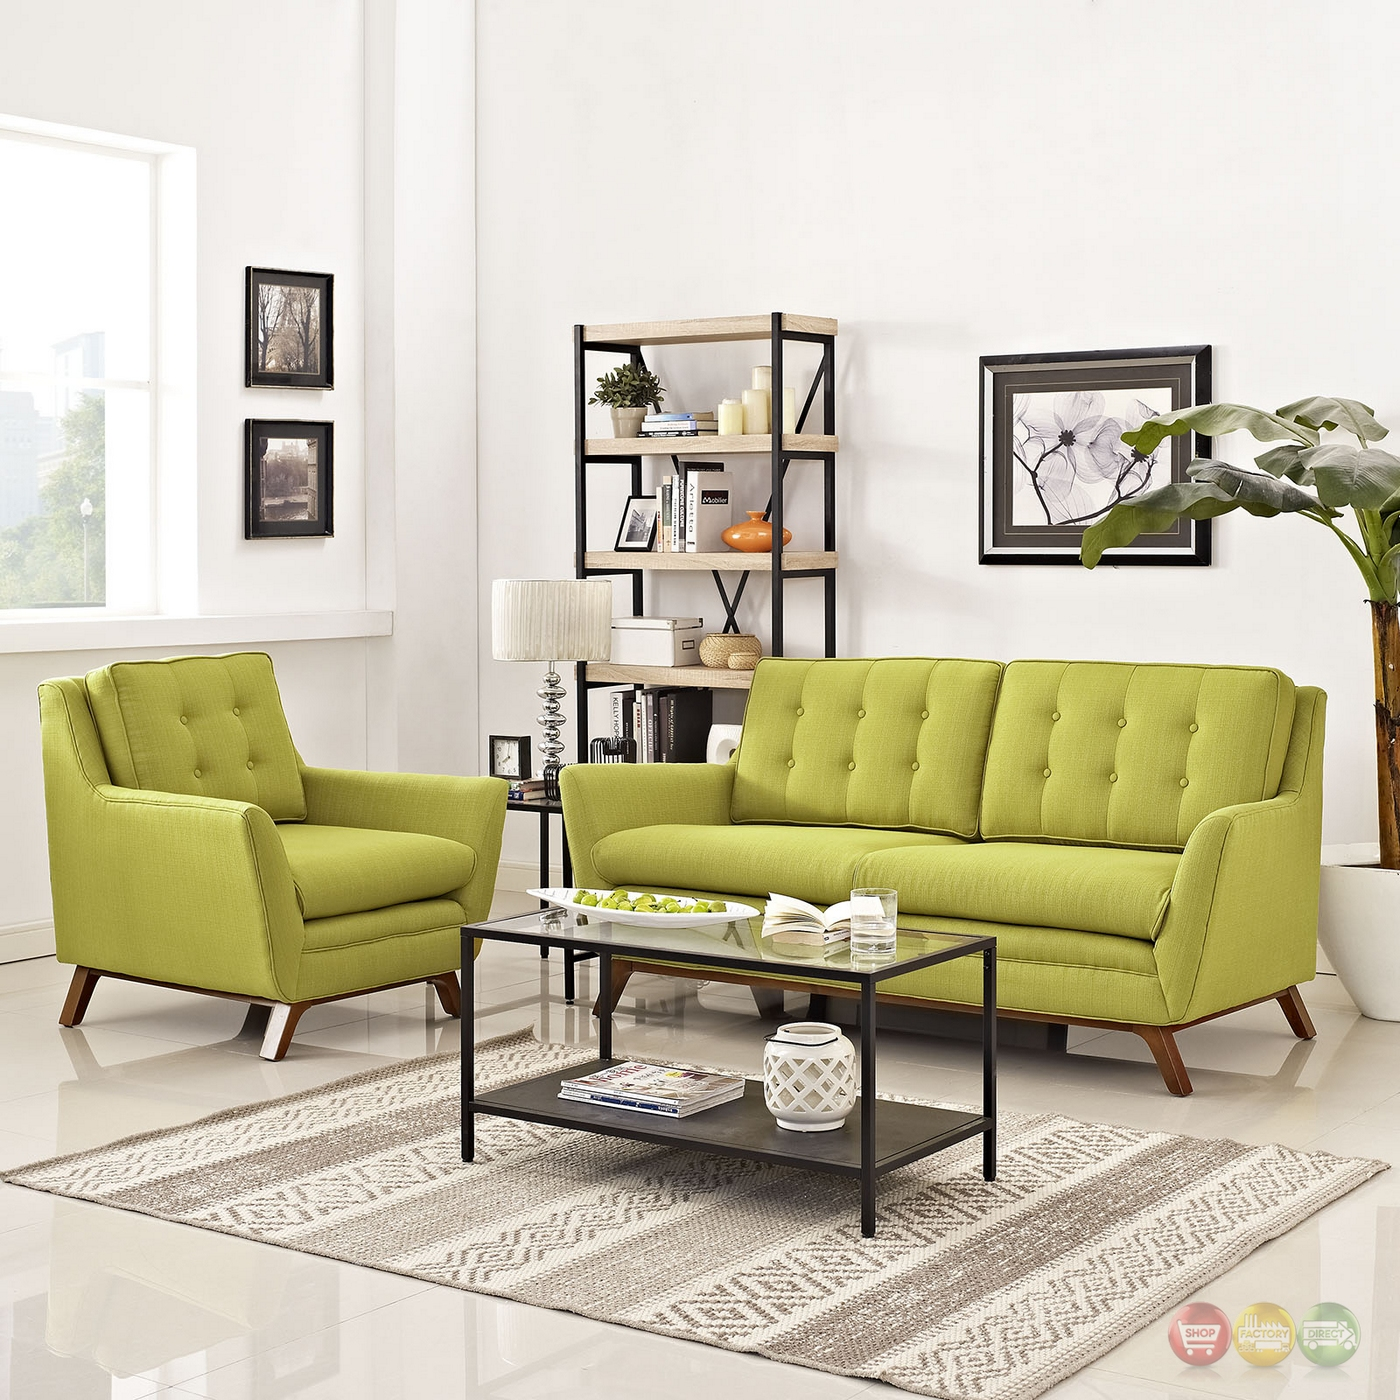 Beguile 2pc Upholstered Loveseat Armchair Living Room Set Wheatgrass